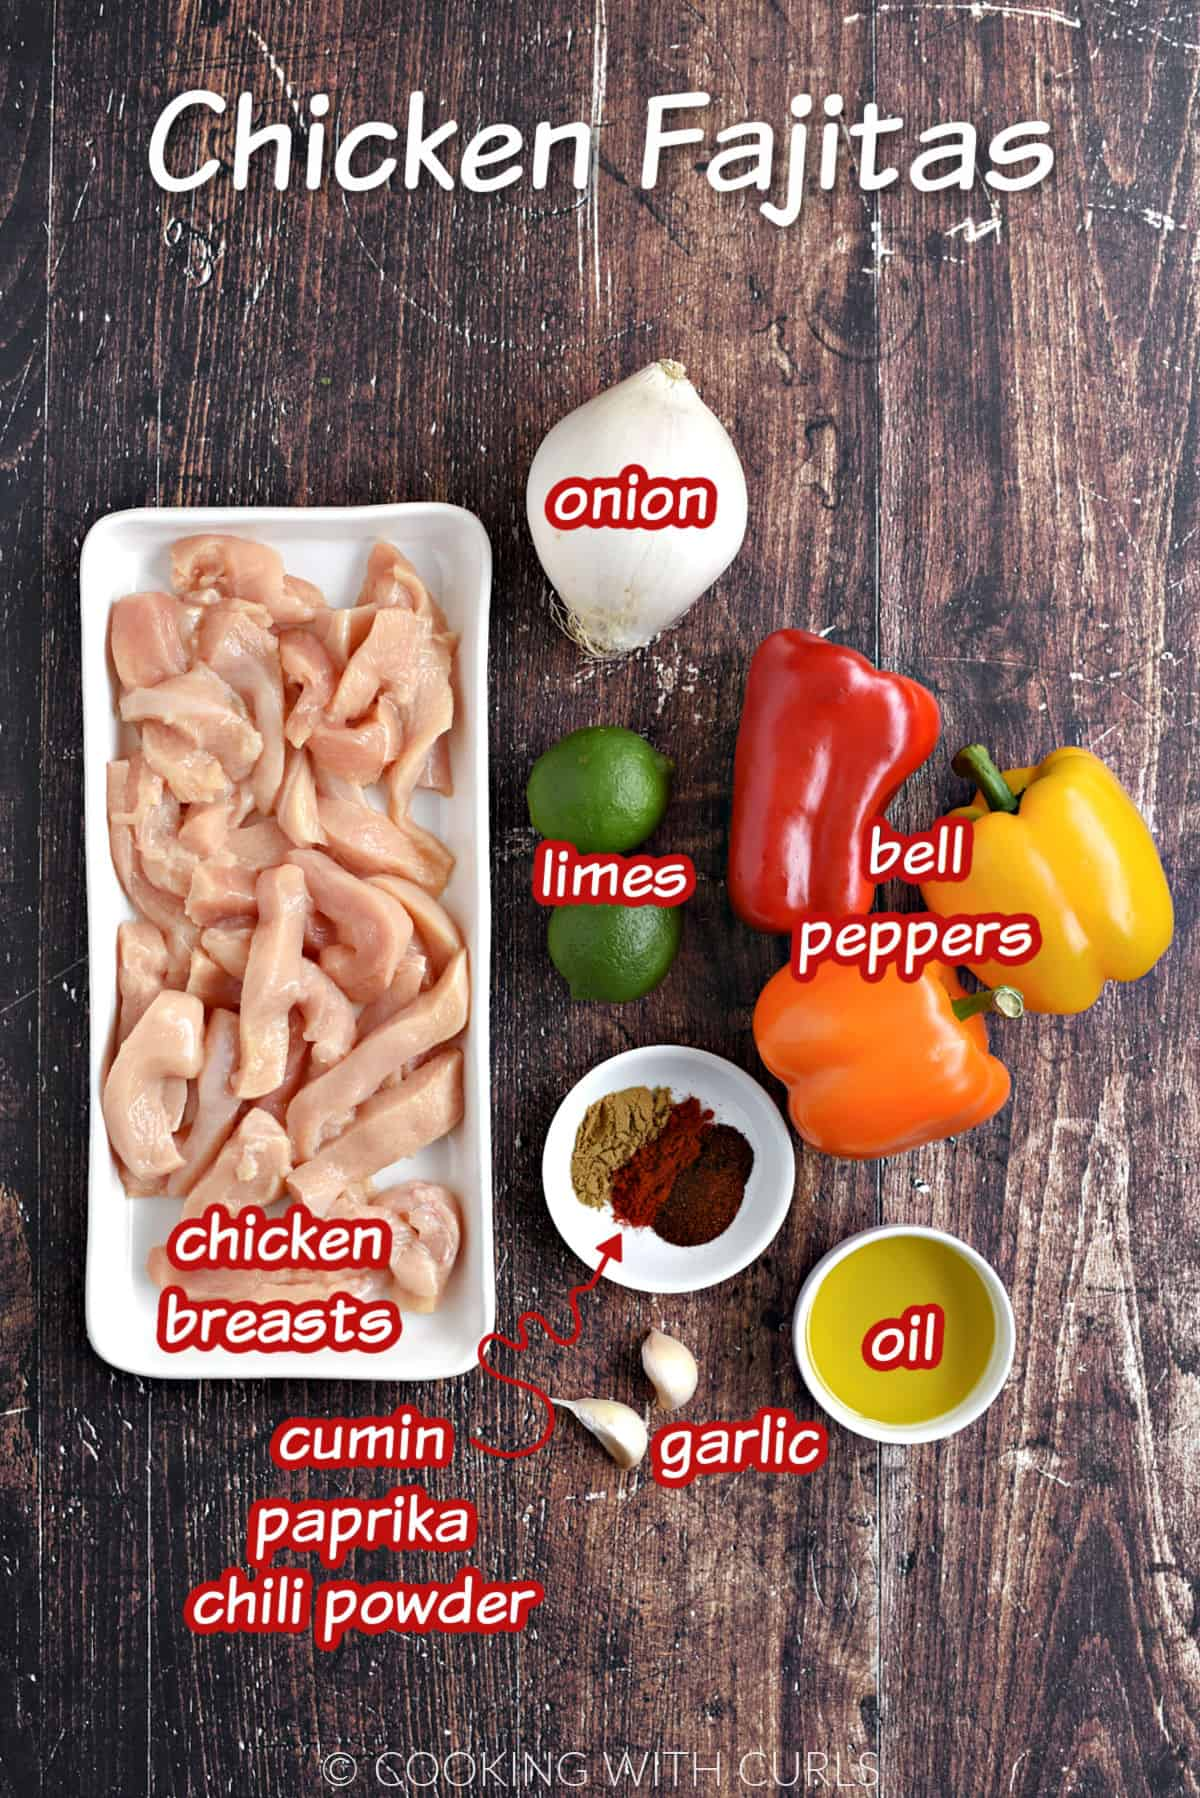 Chicken strips, white onion, two limes, two garlic cloves, olive oil,  three bell peppers, two limes, cumin, paprika, and chili powder to make sheet pan chicken fajitas.